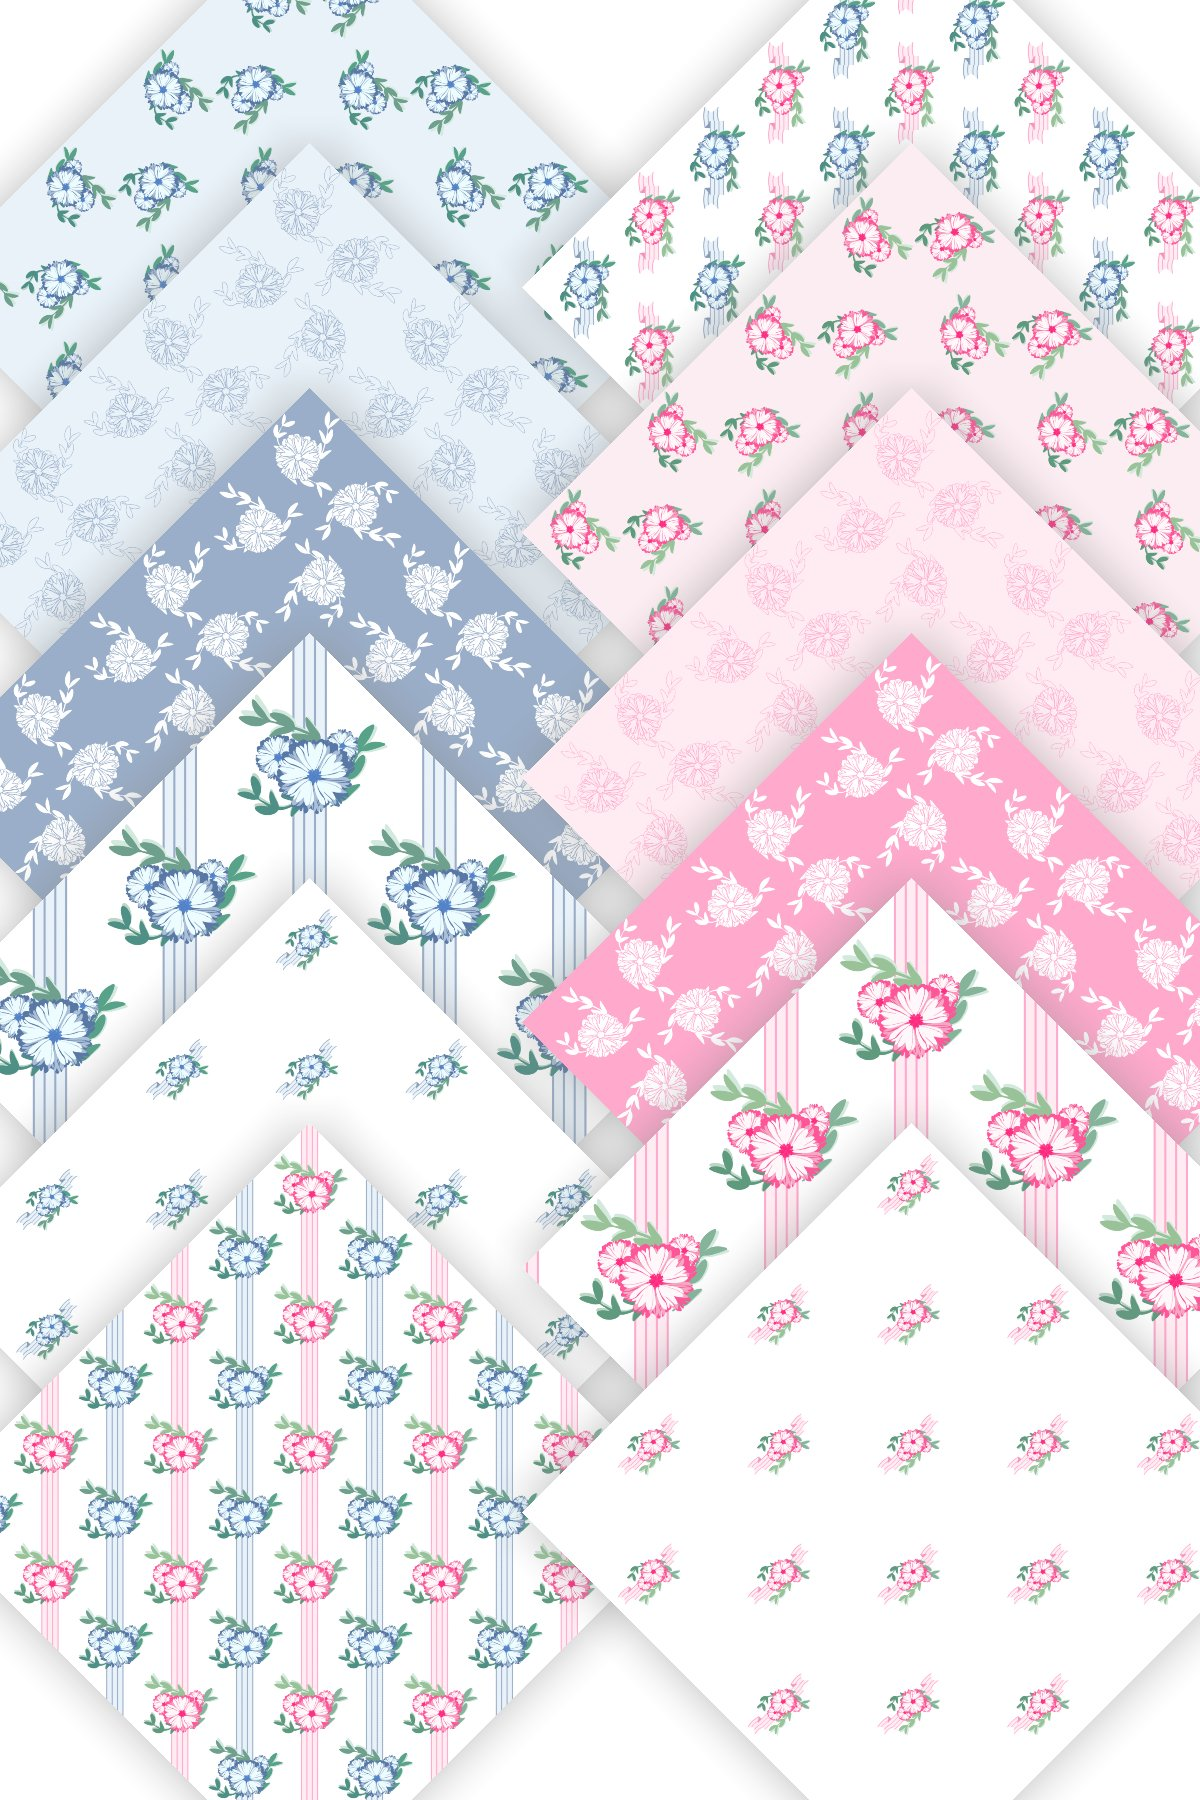 Baby Shower Floral Patterned Seamless Papers 12 PNG files example image 4